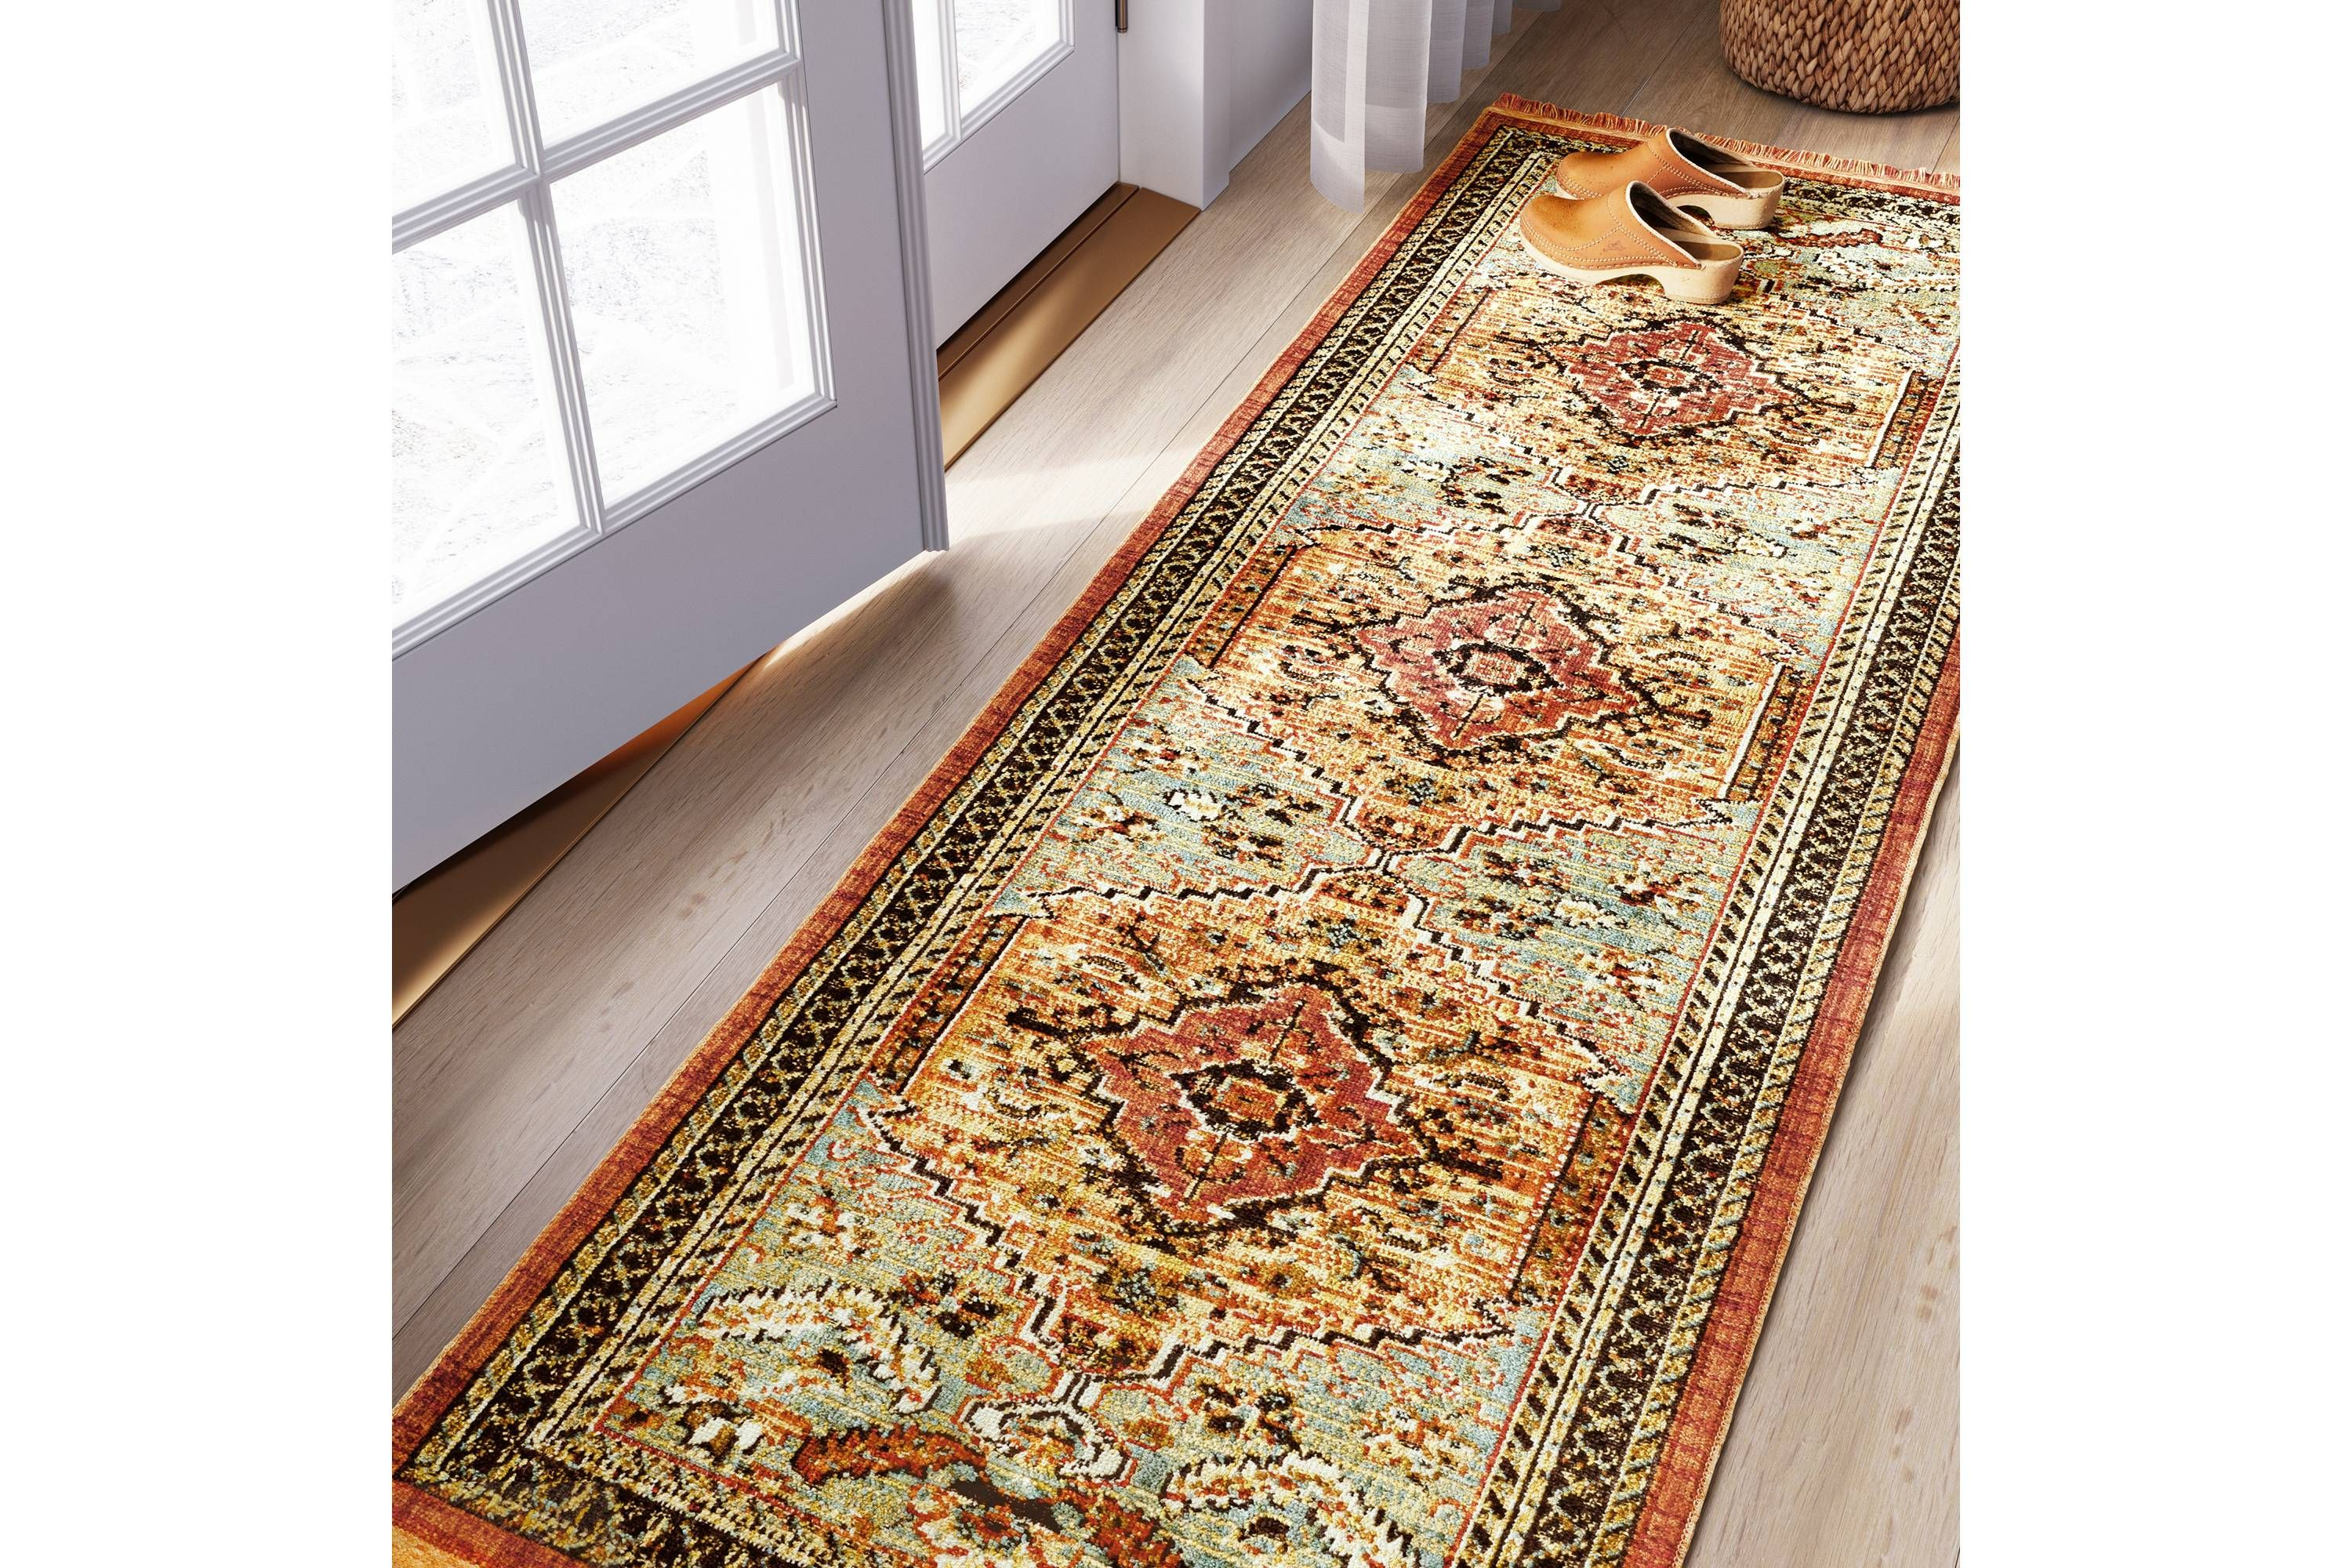 Threshold Rugs Jewel Tones Woven Rug